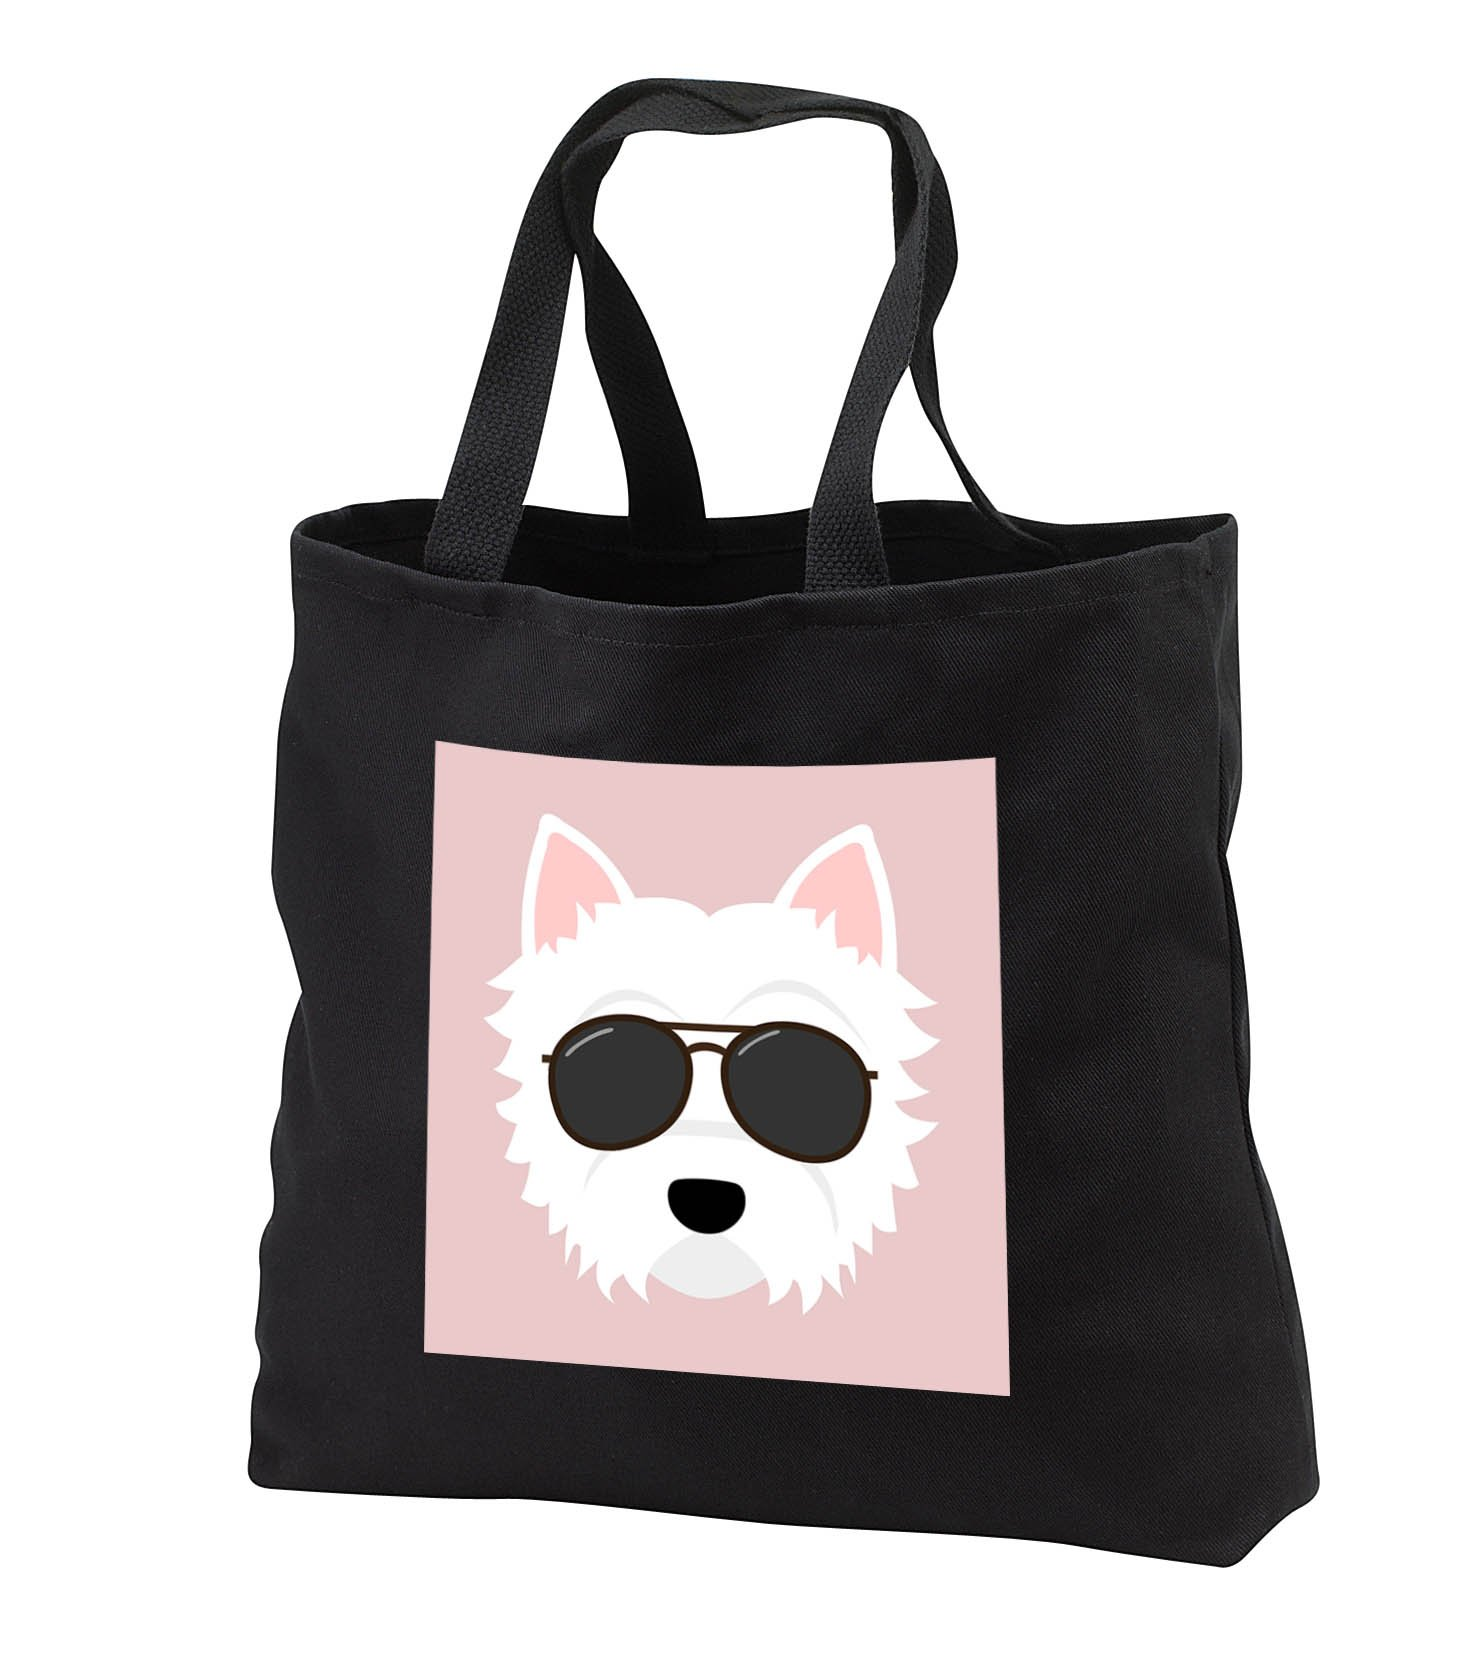 Janna Salak Designs Dogs - Cool Westie Dog with Glasses West Highland Terrier - Tote Bags - Black Tote Bag 14w x 14h x 3d (tb_283575_1)